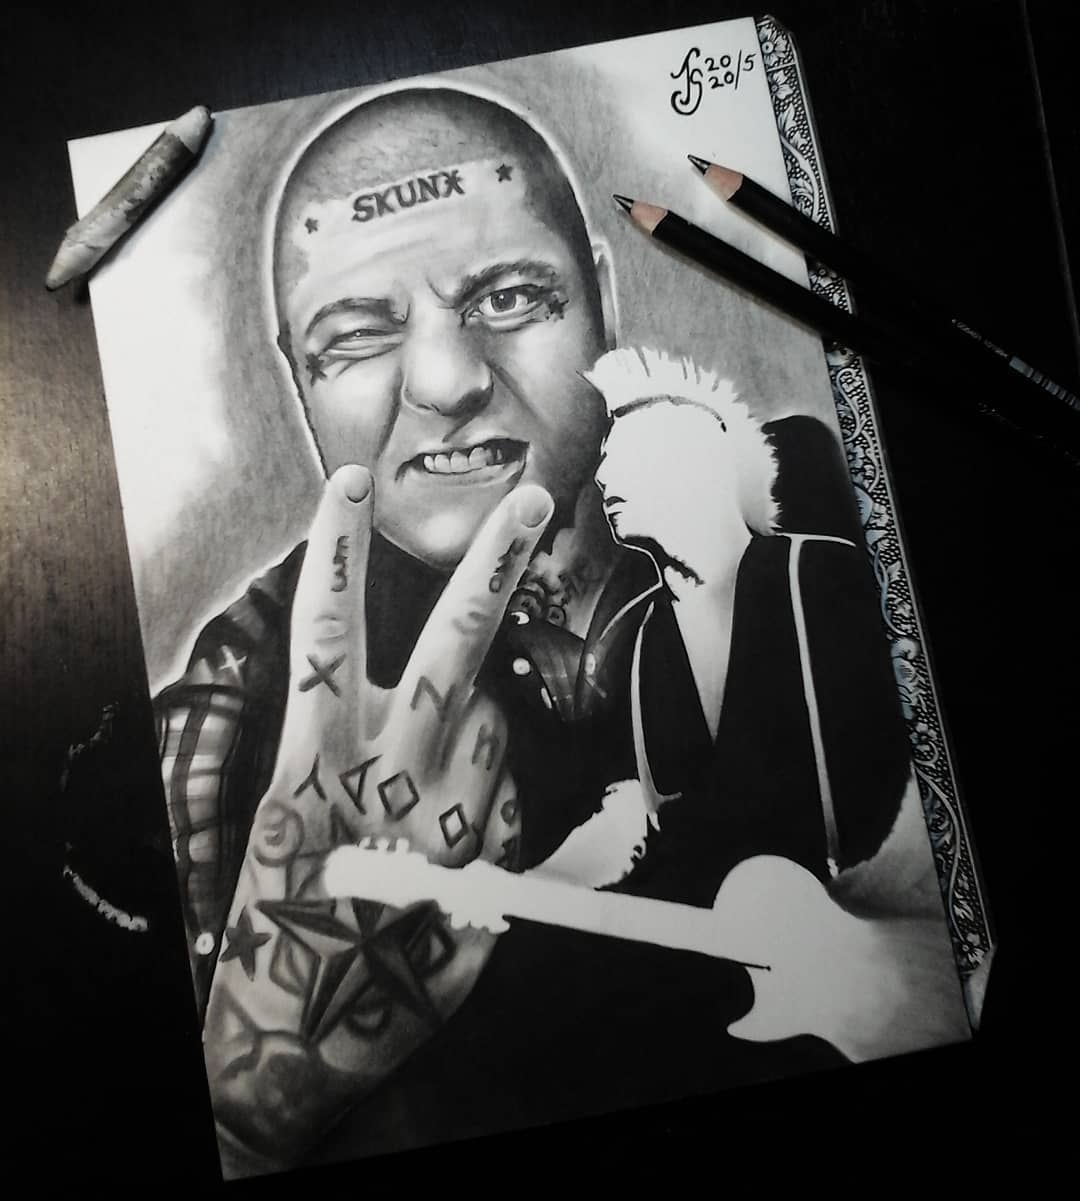 Finally finished @larsfrederiksen from @rancid  Thx for watching! #germantattooe